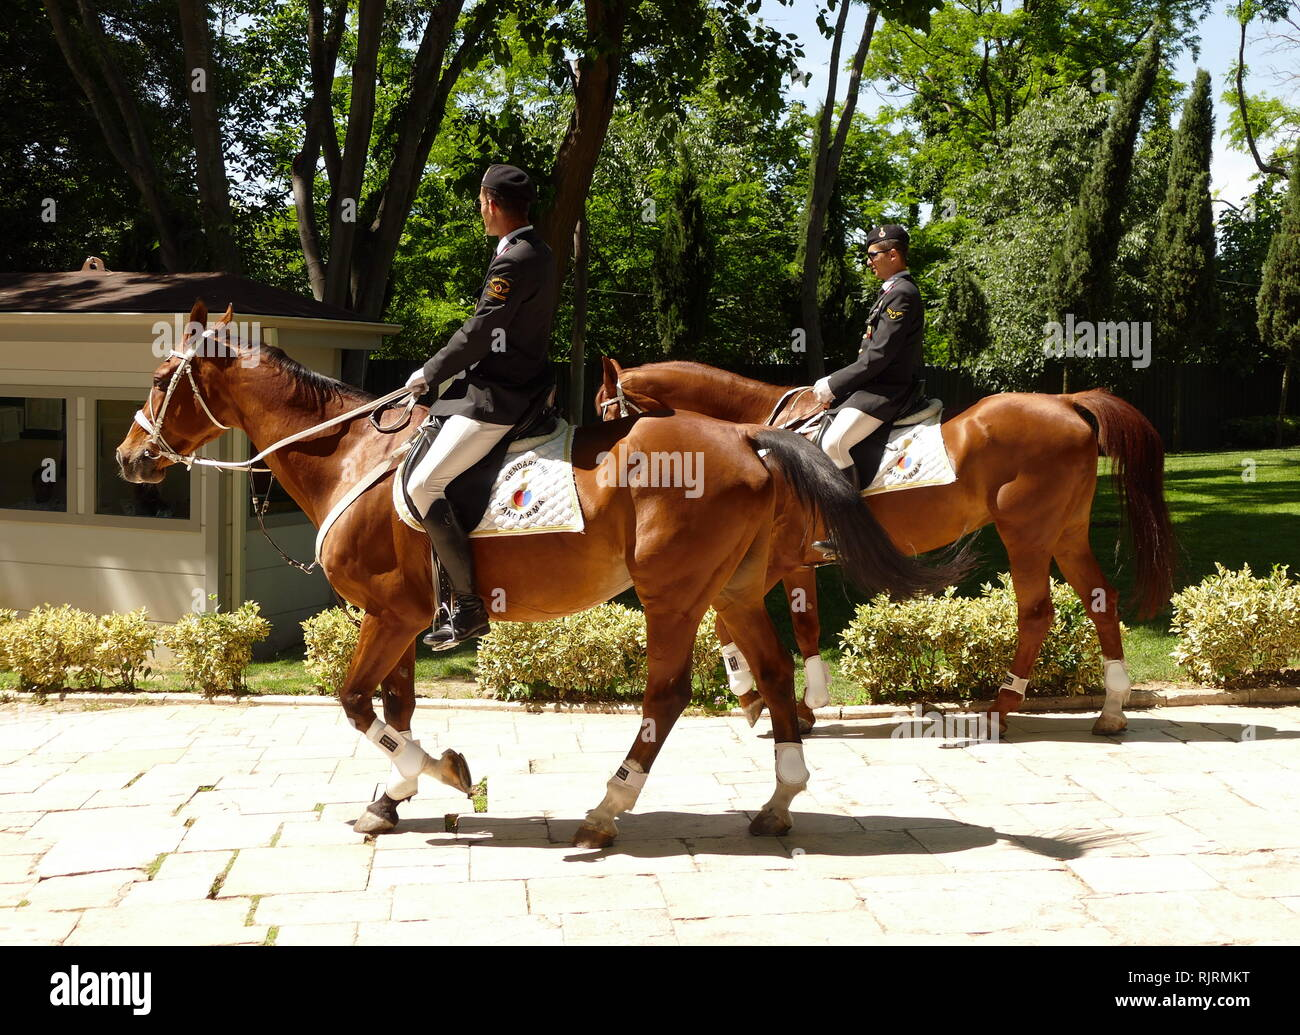 Mounted cavalry of the Turkish Gendarmerie General Command, a service branch of the Turkish Armed Forces responsible for the maintenance of the public order in areas that fall outside the jurisdiction of police forces. - Stock Image